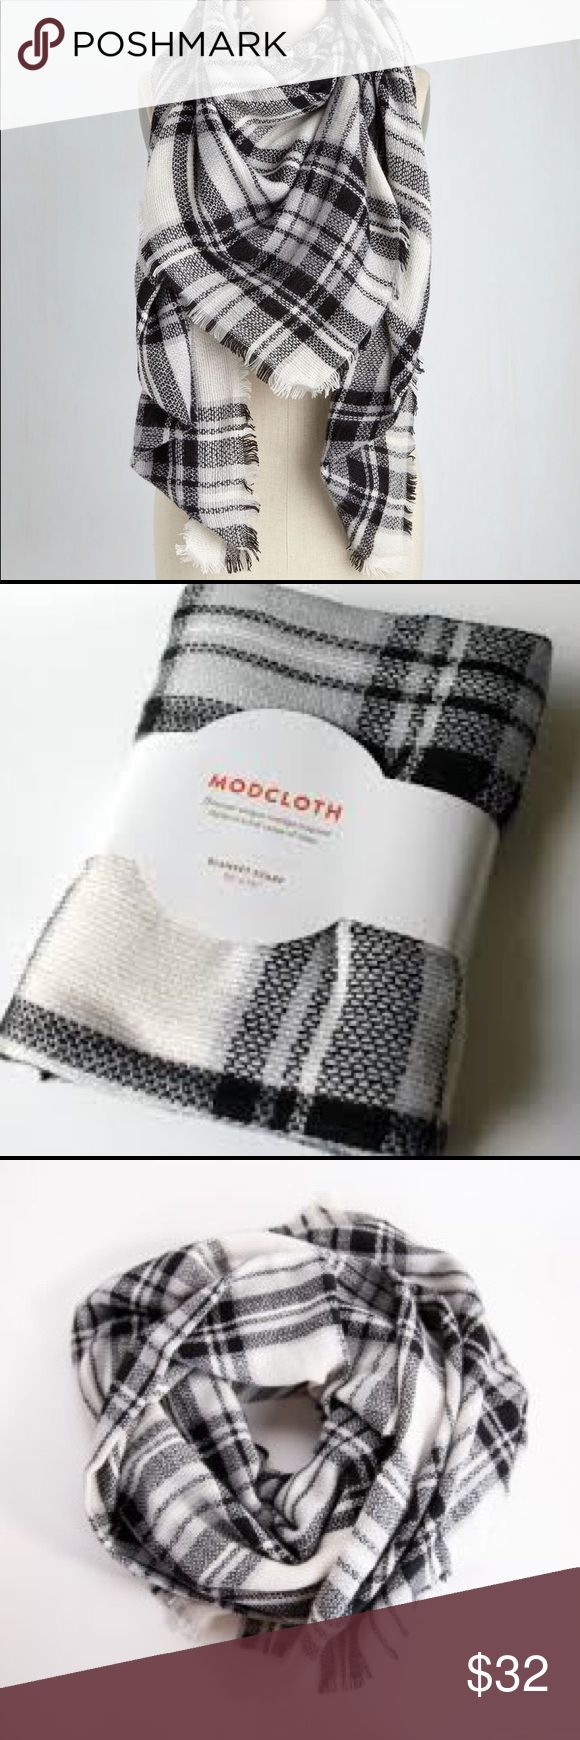 NWT Modcloth blanket scarf Black and white tartan plaid blanket scarf. Super cute and chunky, great to keep you warm and to keep you fashionable! It's NWT because it was packaged in a tag but I took it out to show the full scarf! Modcloth Accessories Scarves & Wraps